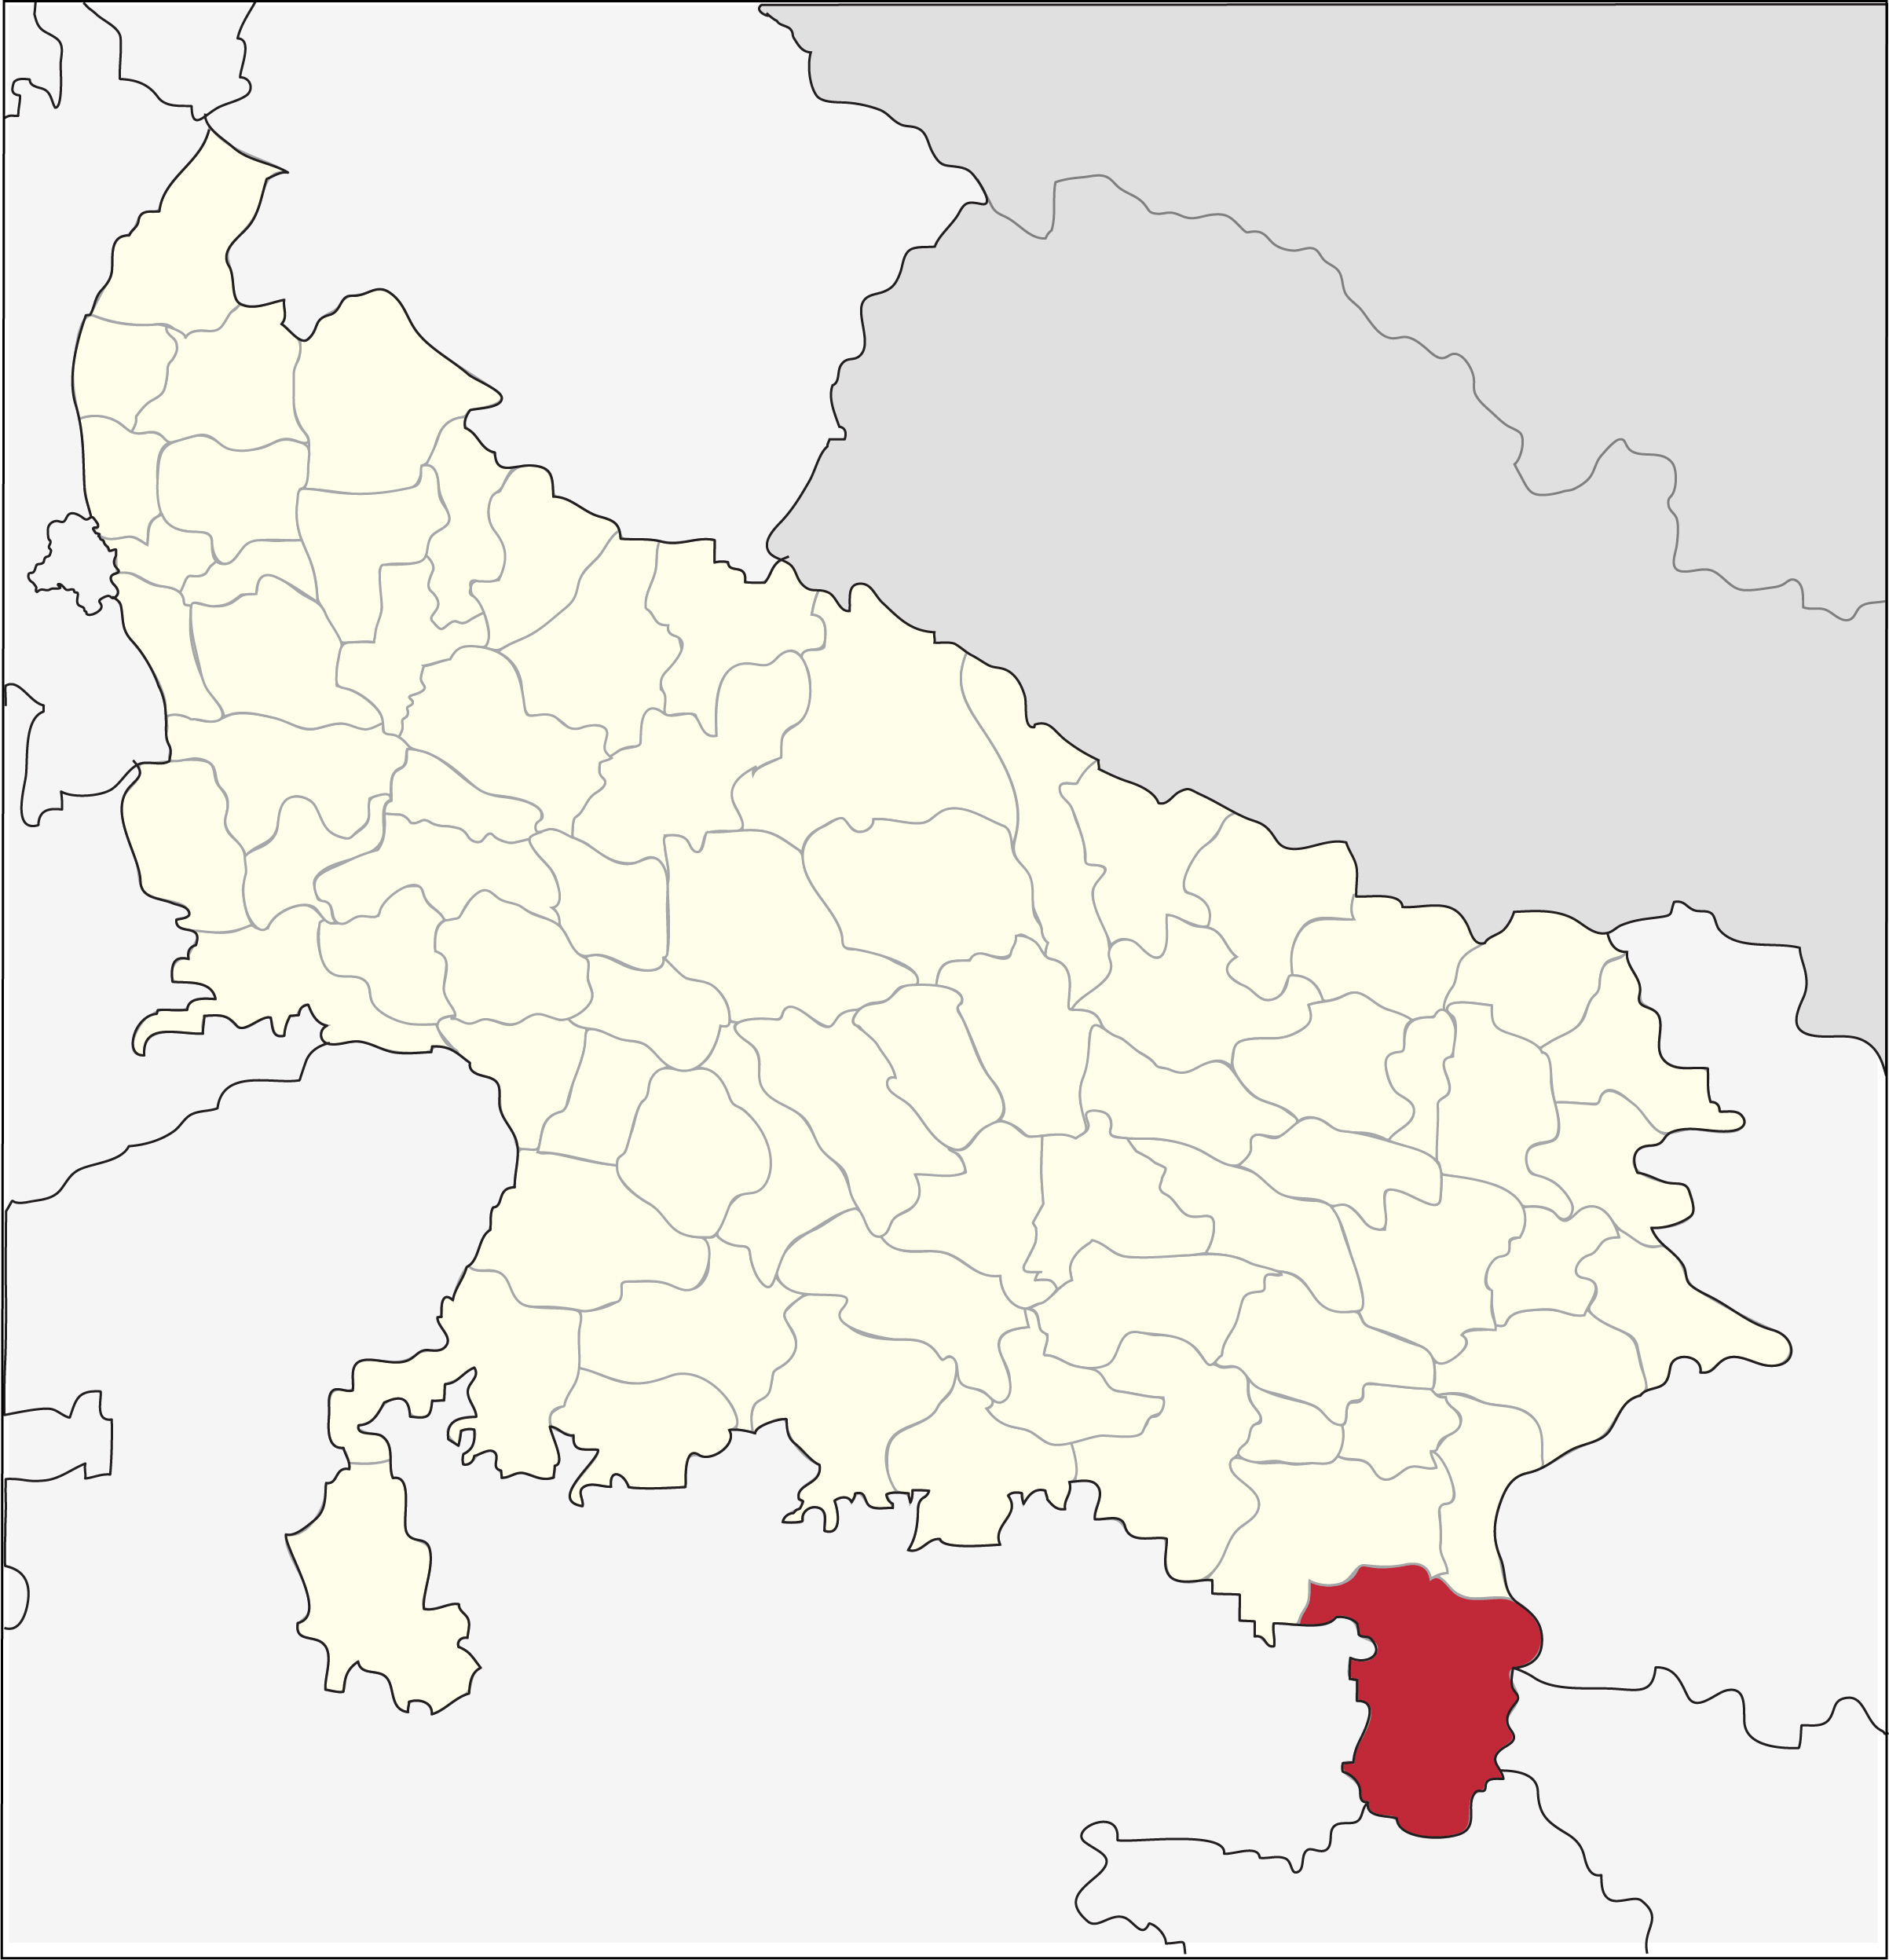 Sonbhadra district in Uttar Pradesh. Map from Wikimedia Commons.